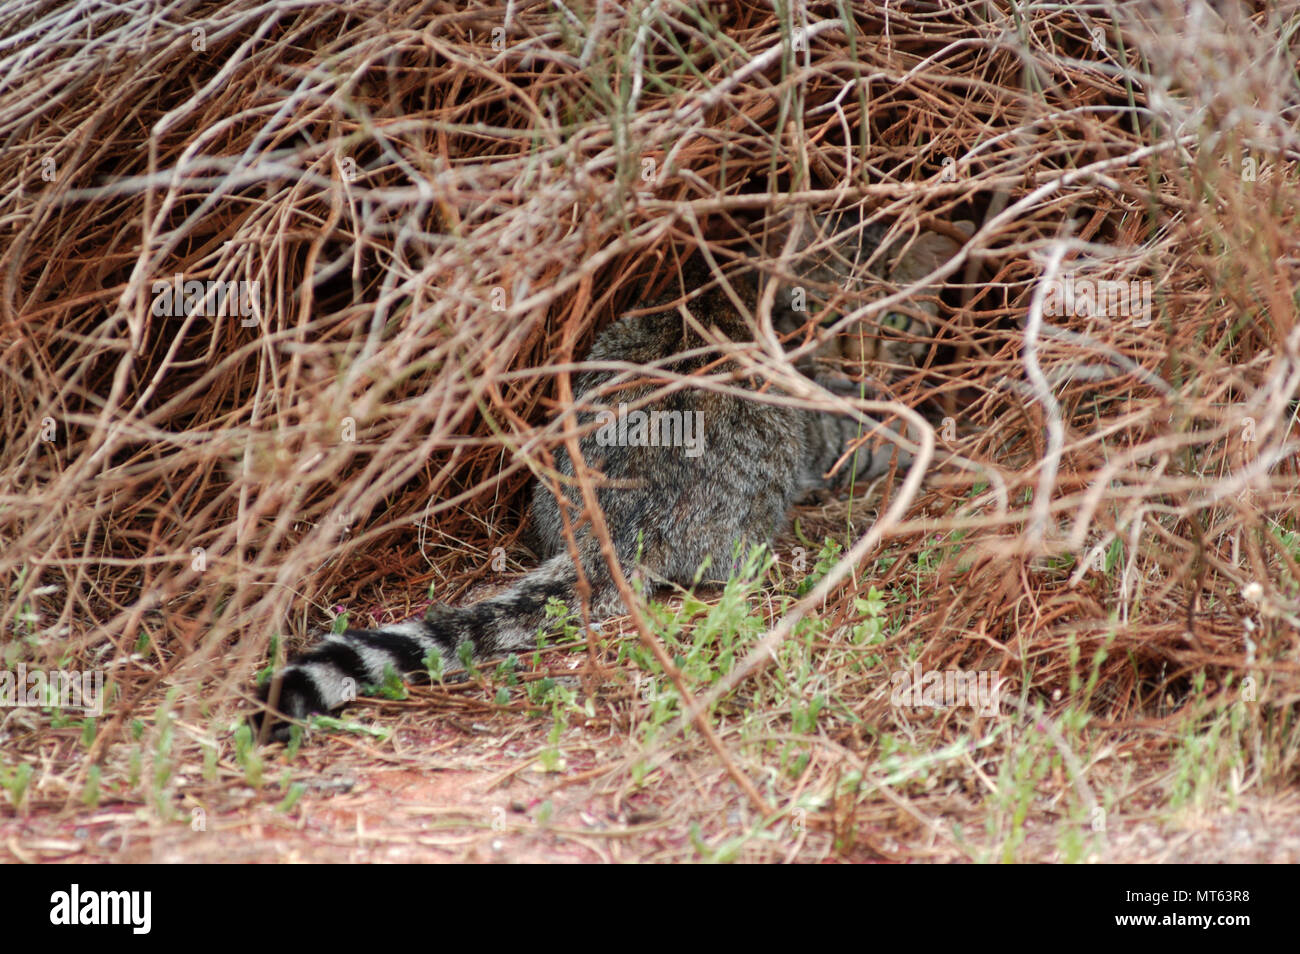 Feral cat hiding in the scrub in outback Western Australia. - Stock Image